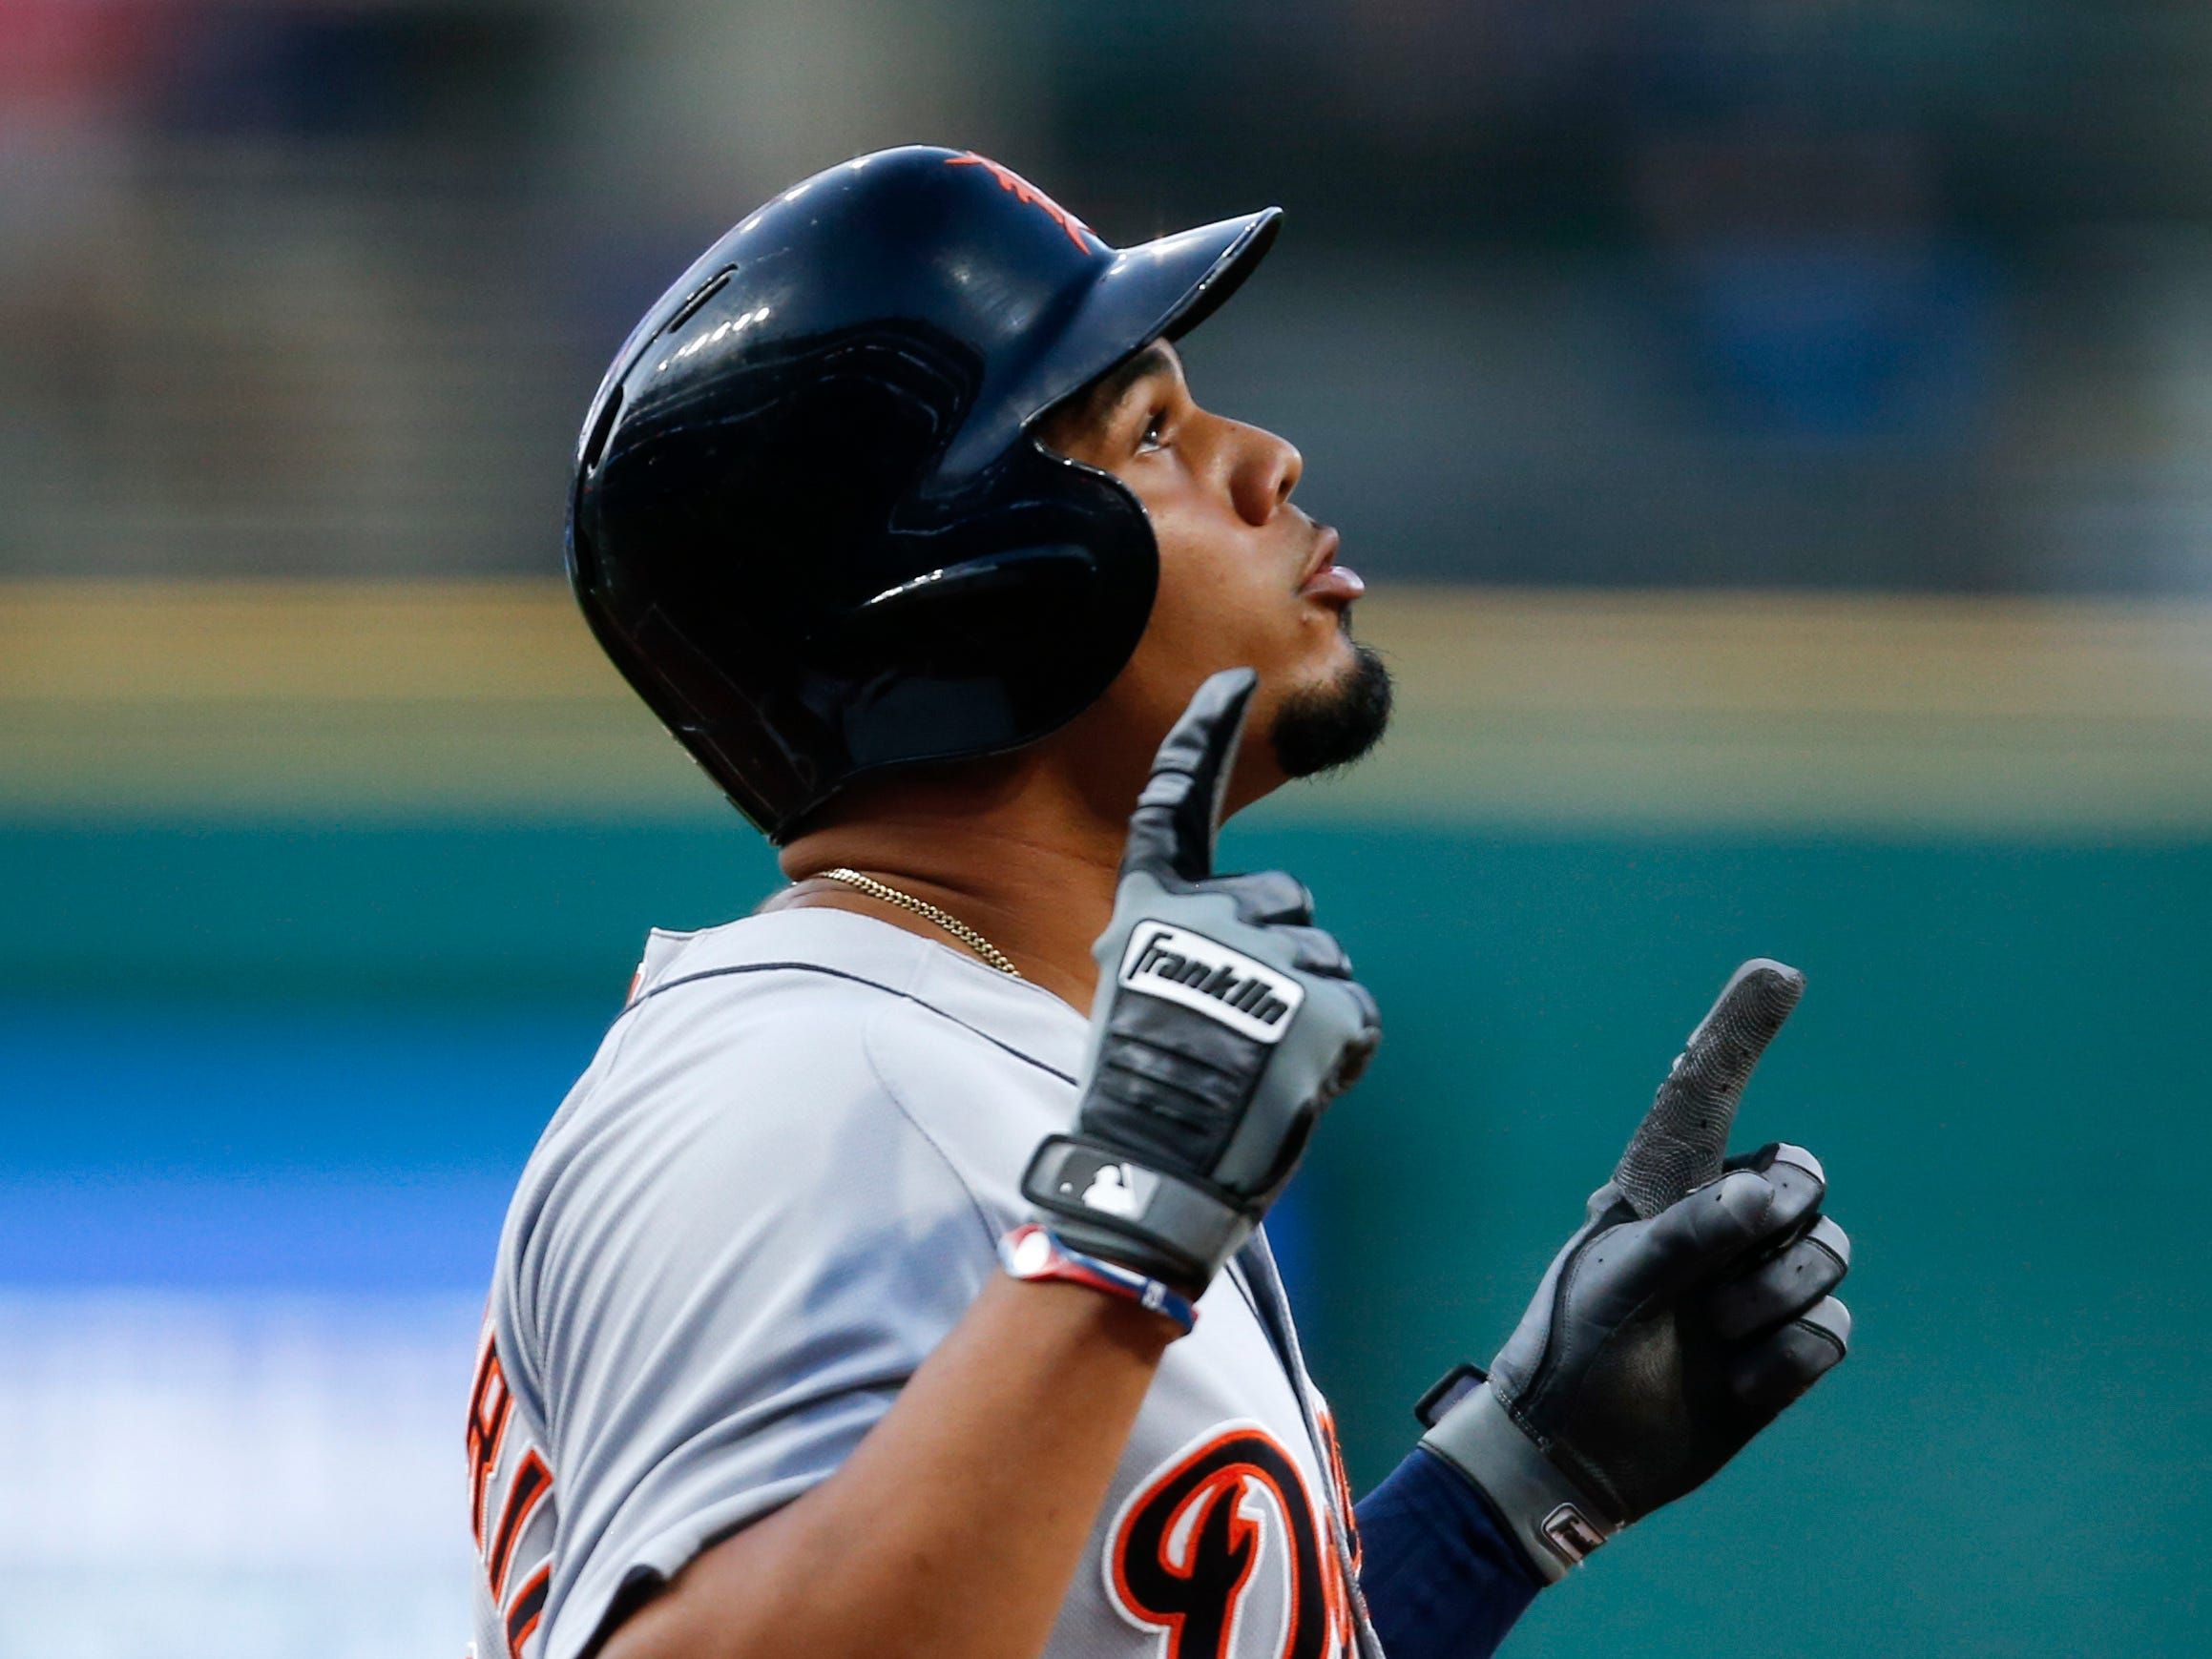 Detroit Tigers' Jeimer Candelario celebrates after hitting a solo home run off Cleveland Indians starting pitcher Josh Tomlin during the first inning Friday, Sept. 14, 2018, in Cleveland.